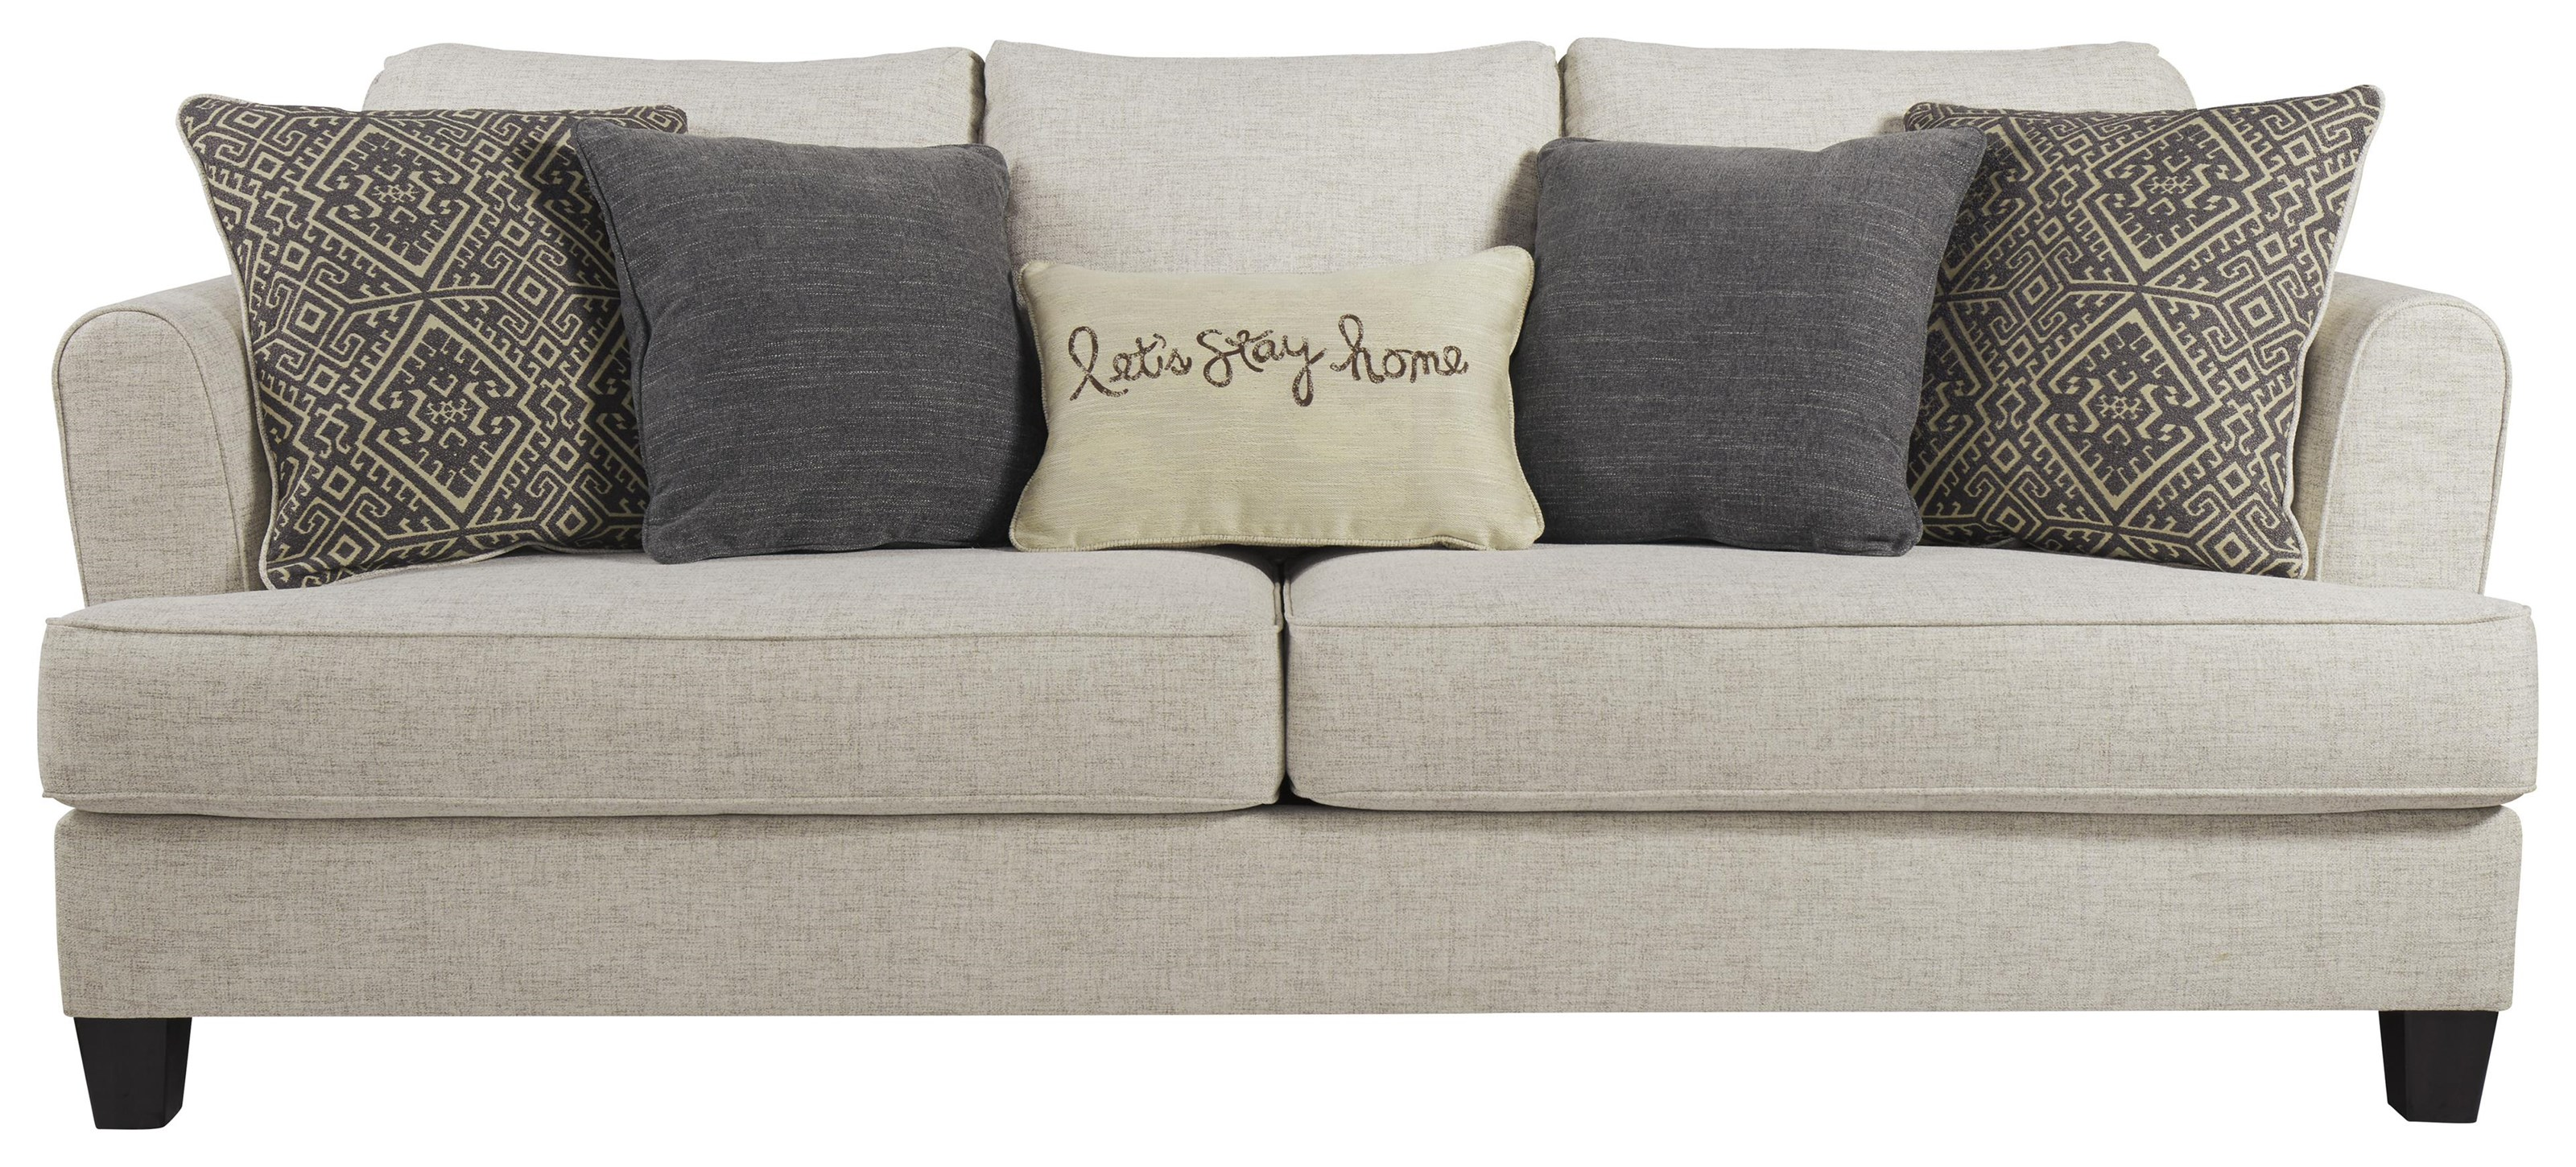 Alcona Sofa by Ashley Furniture at Furniture and ApplianceMart